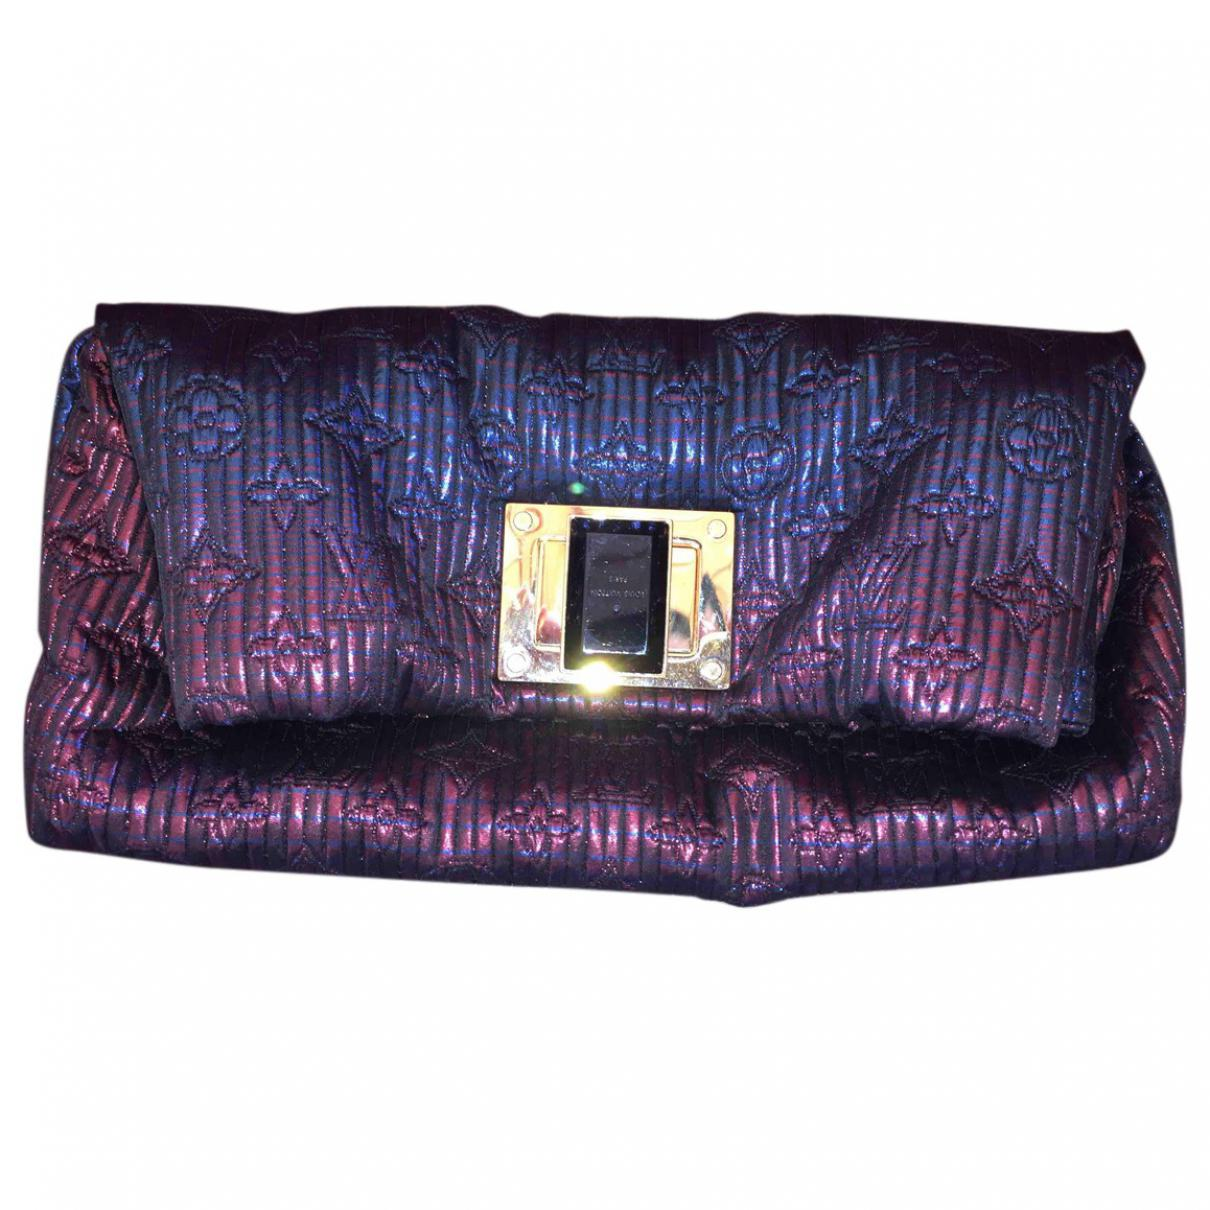 01f54bbf01 Louis Vuitton Clutch Bag in Purple - Lyst